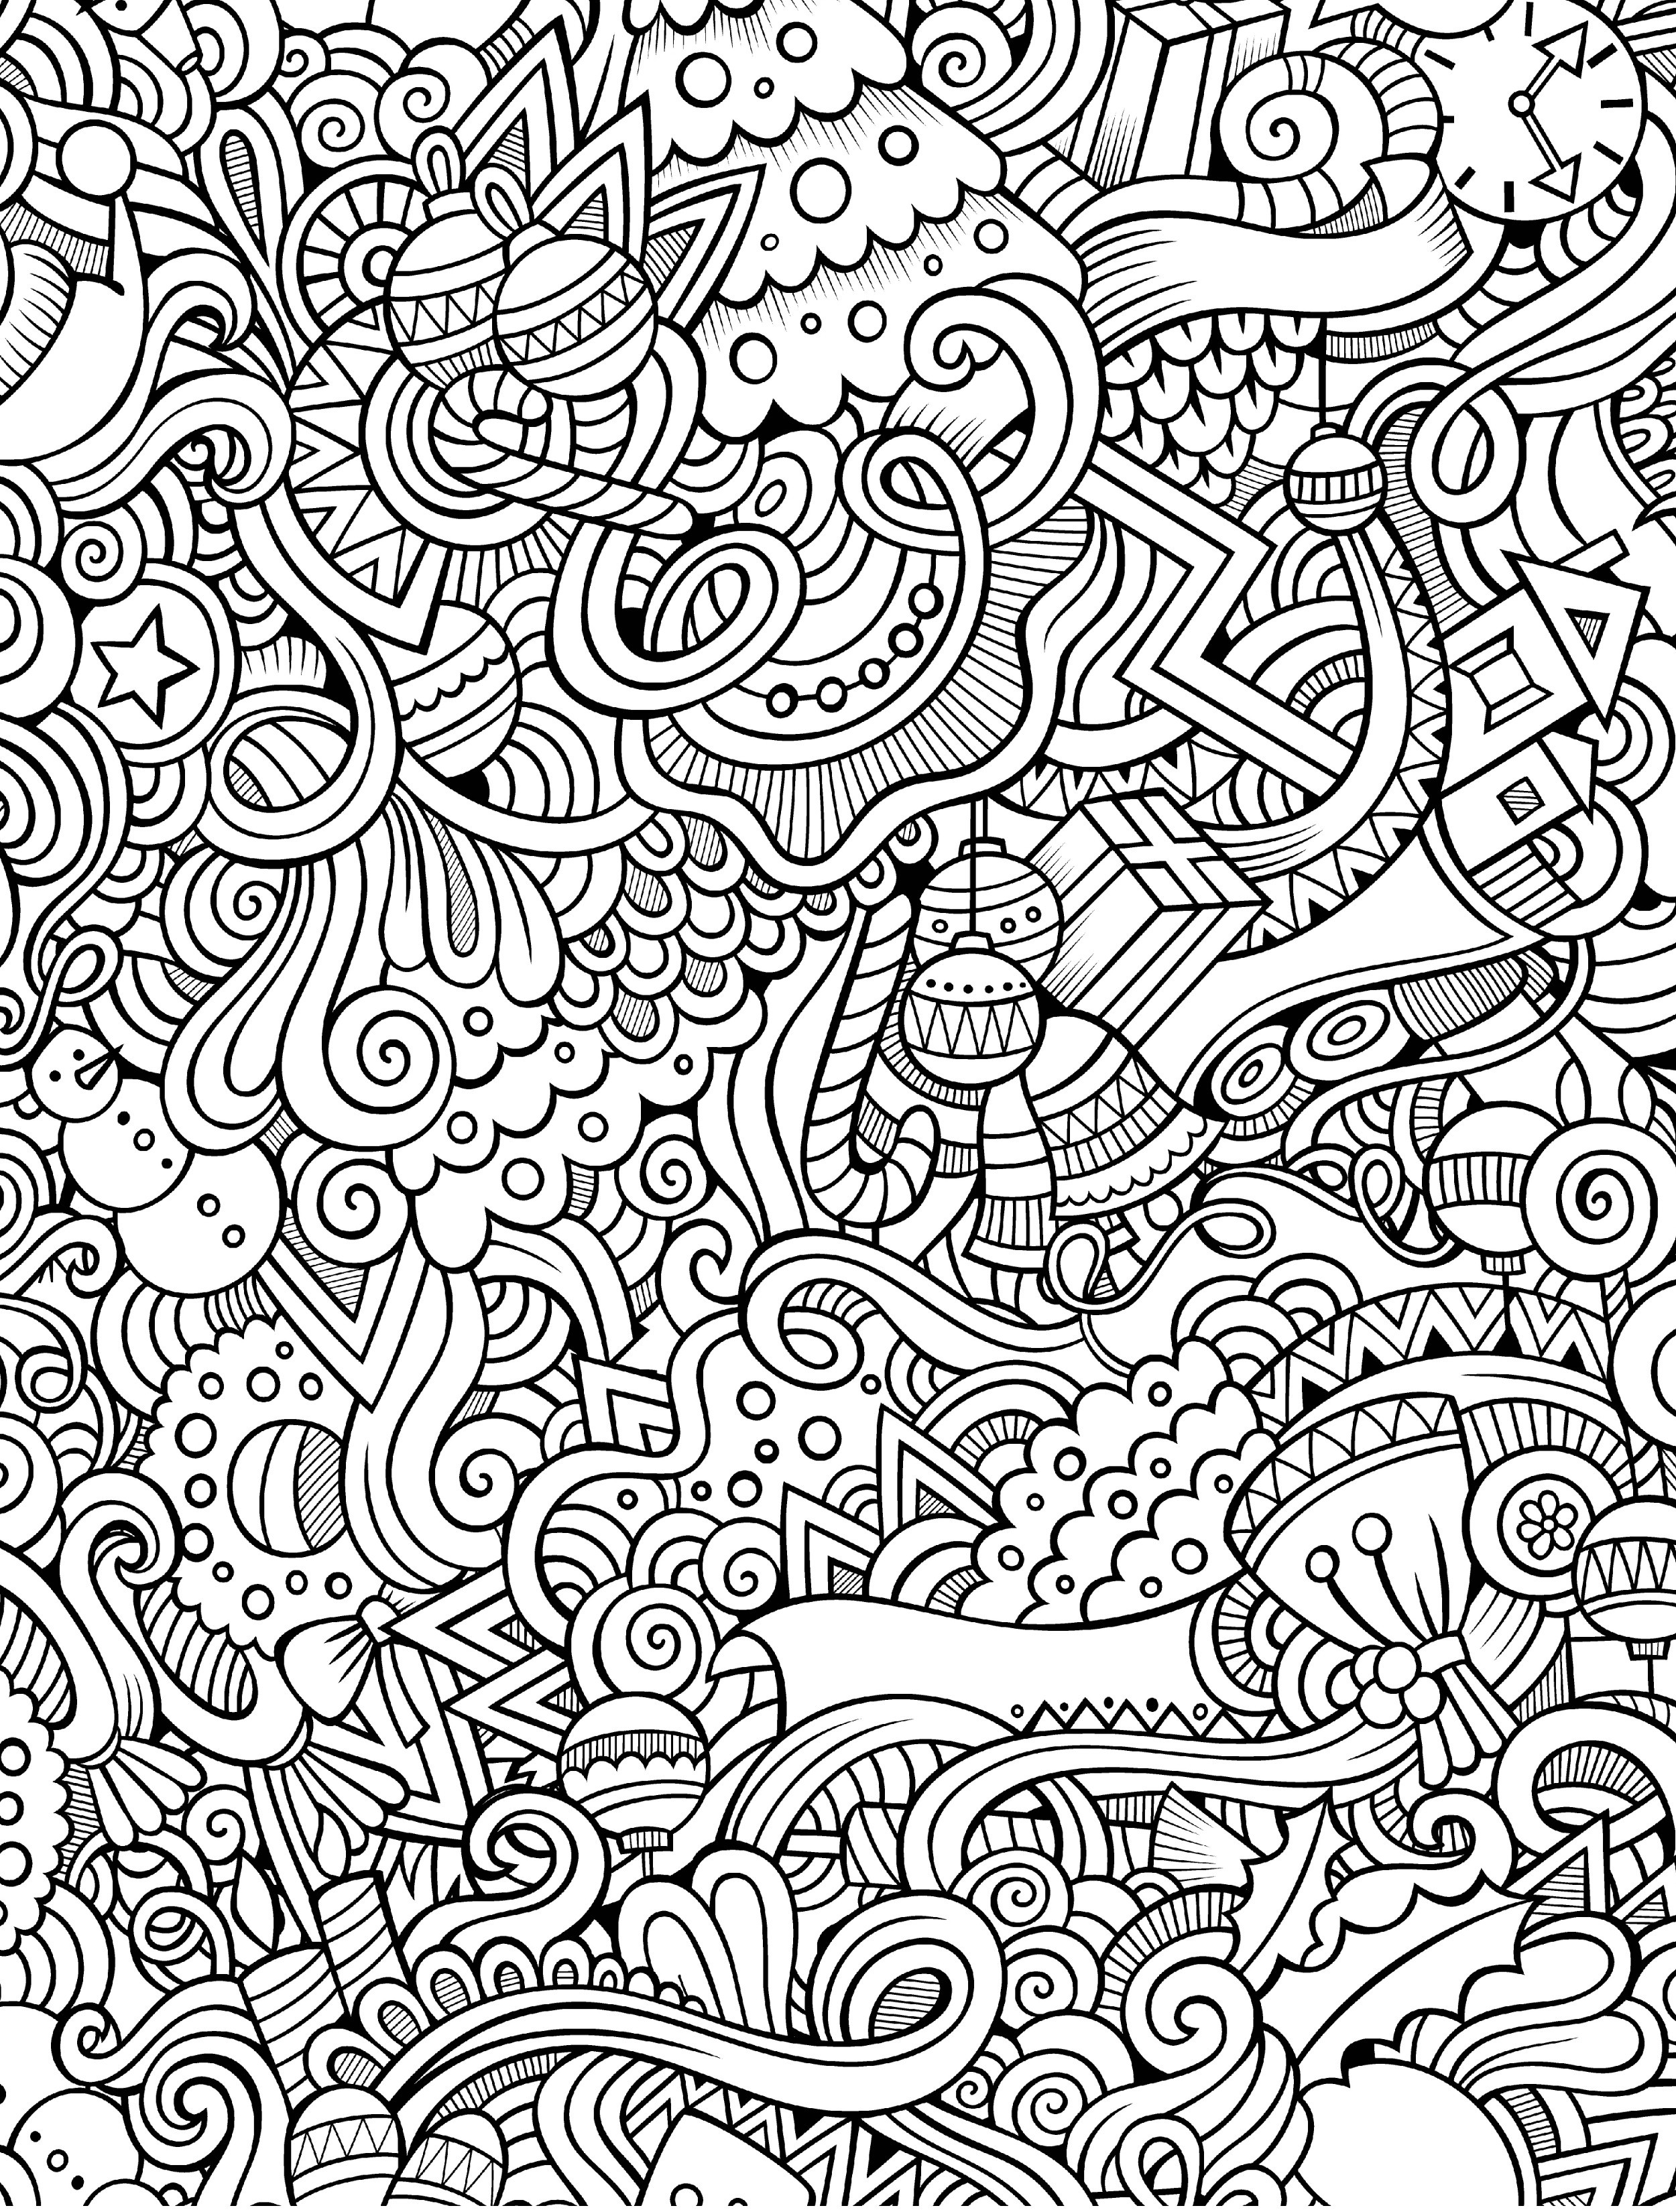 Best ideas about Free Printable Christmas Coloring Sheets For Girls Hard . Save or Pin 10 Free Printable Holiday Adult Coloring Pages Now.